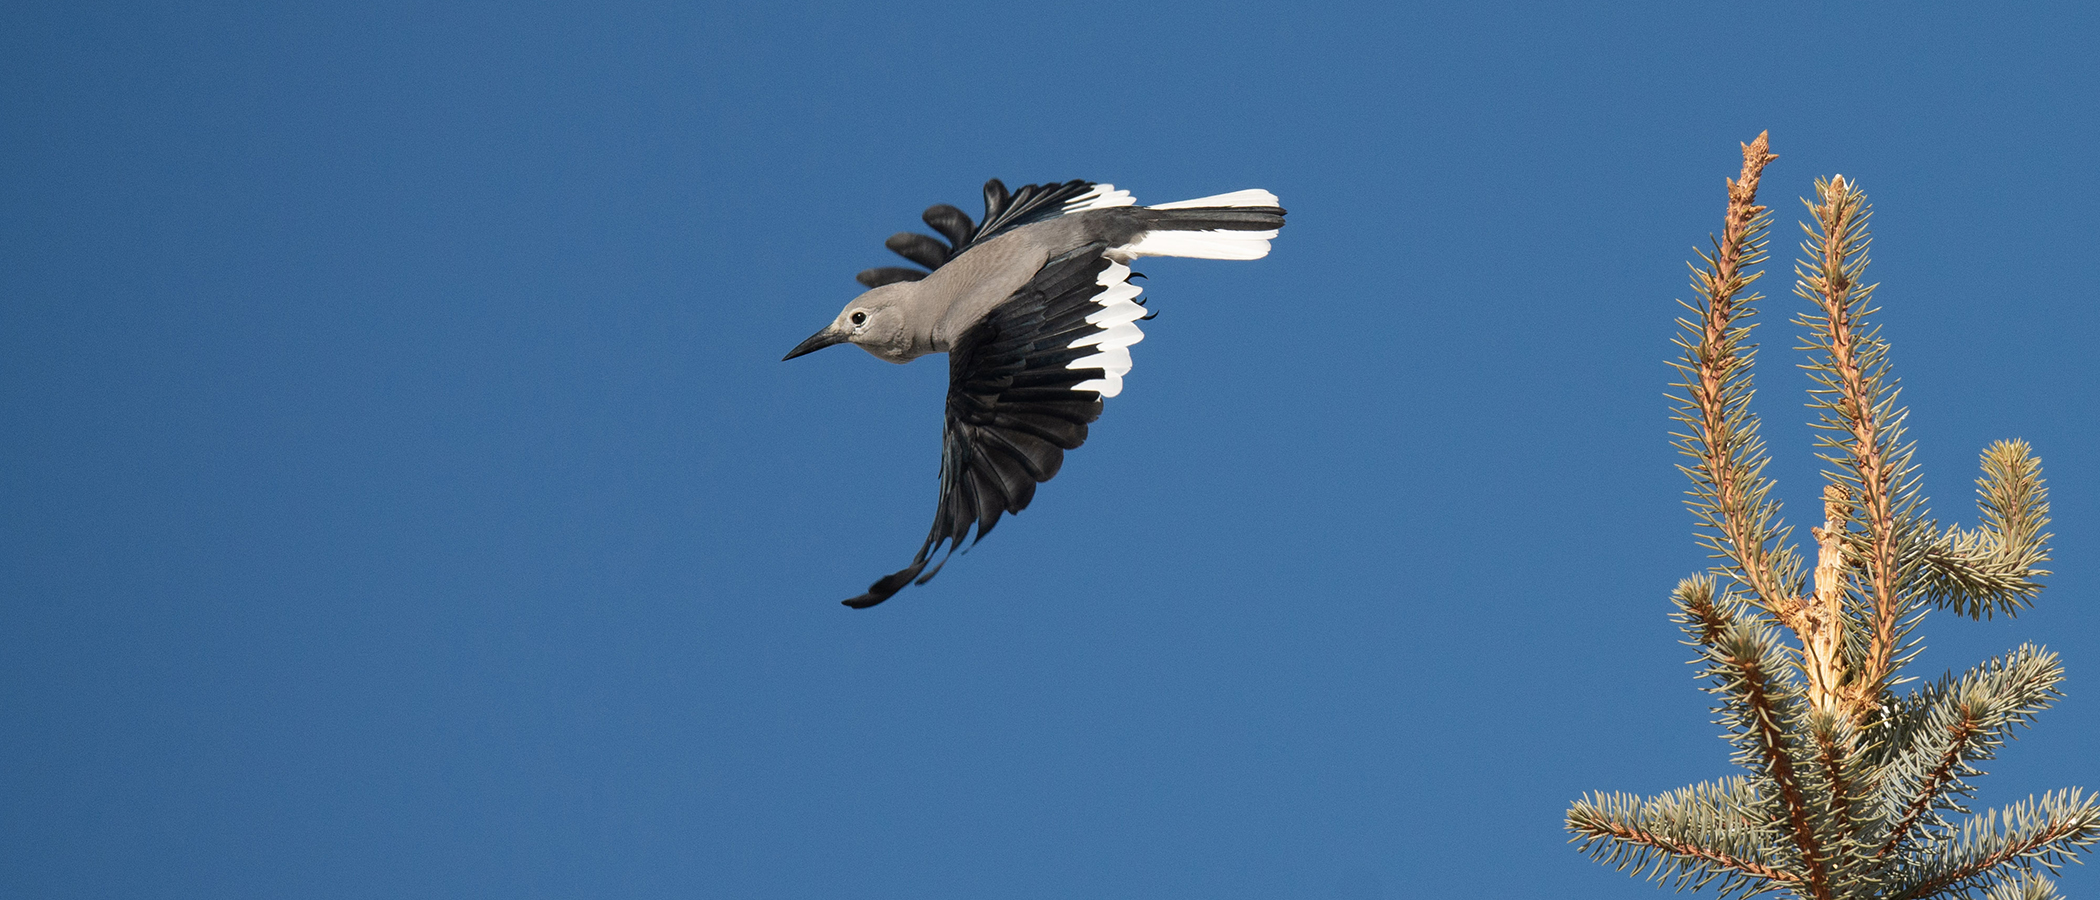 A bird with black wings and a gray body swoops through the blue sky.